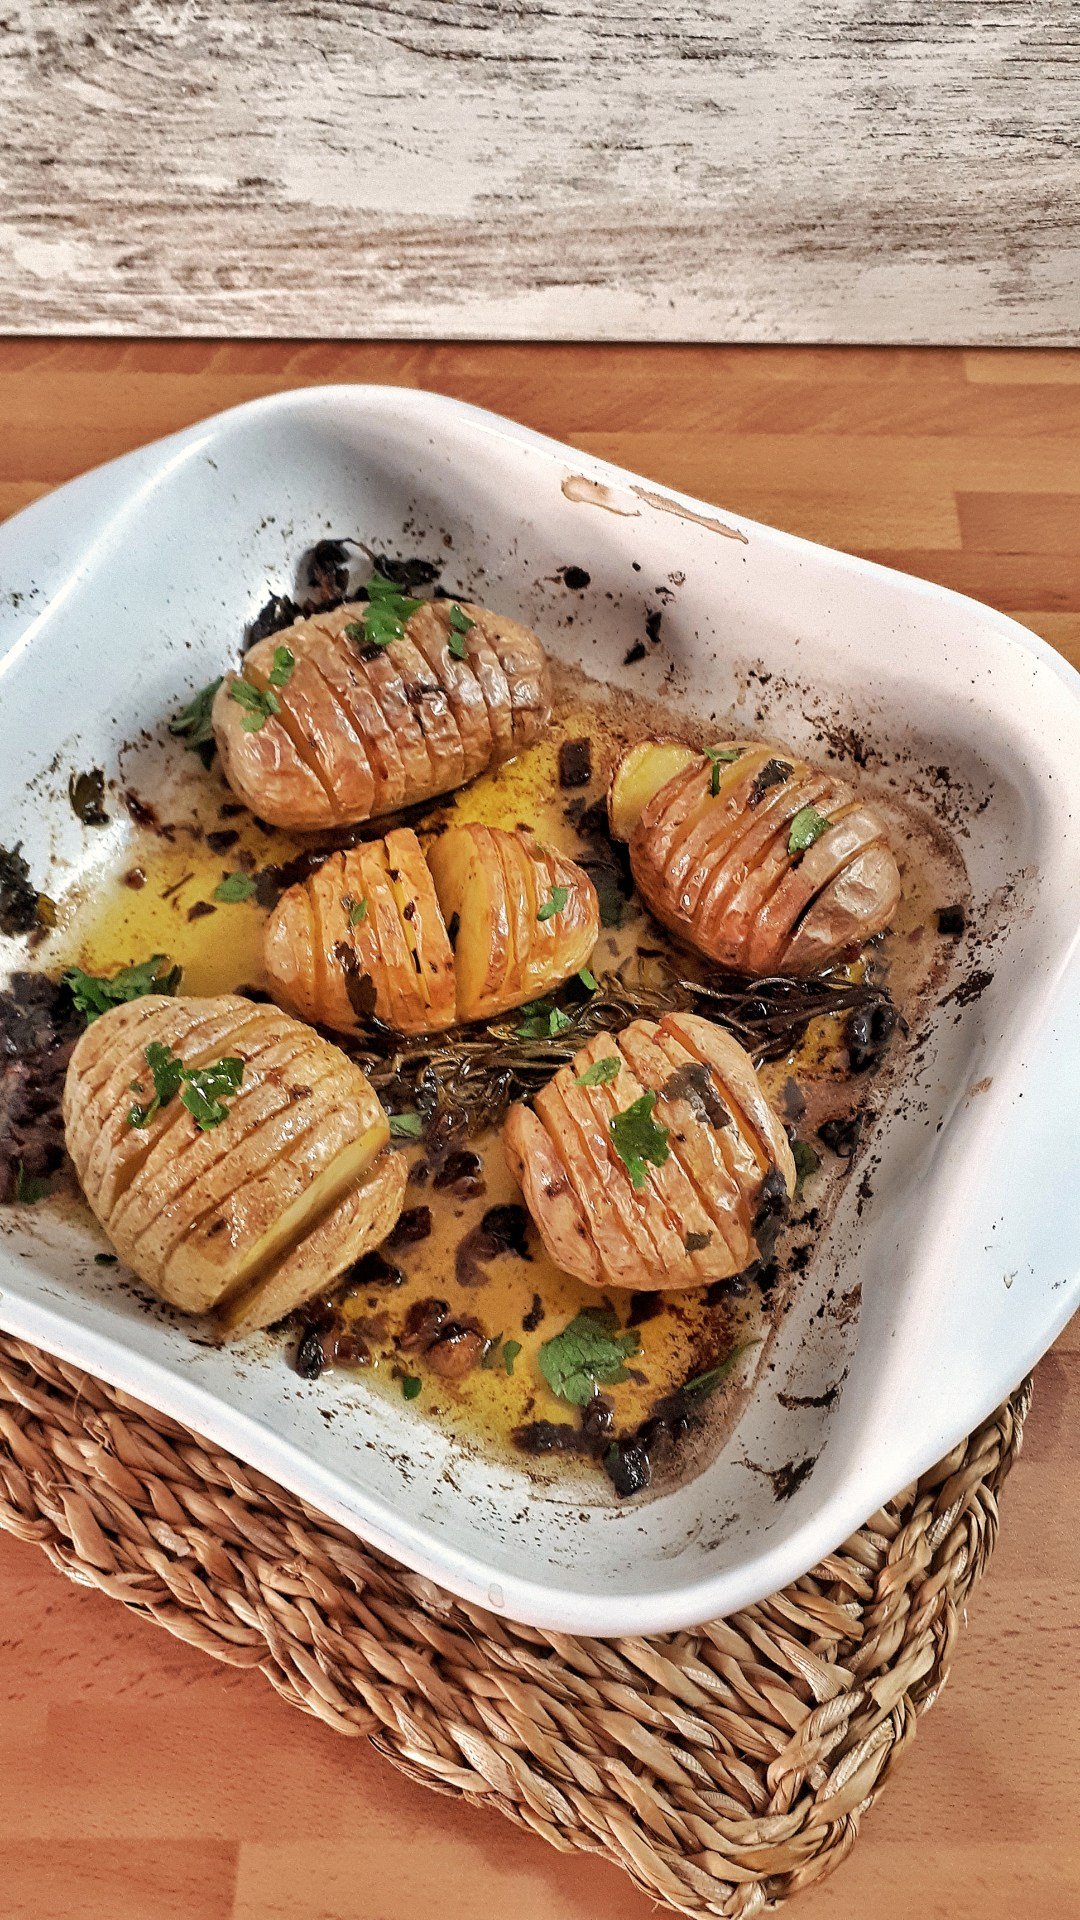 Garlic and rosemary oven roasted potatoes are crunchy on the top and soft on the inside. Easy and healthy side dish perfect to impress your guests.